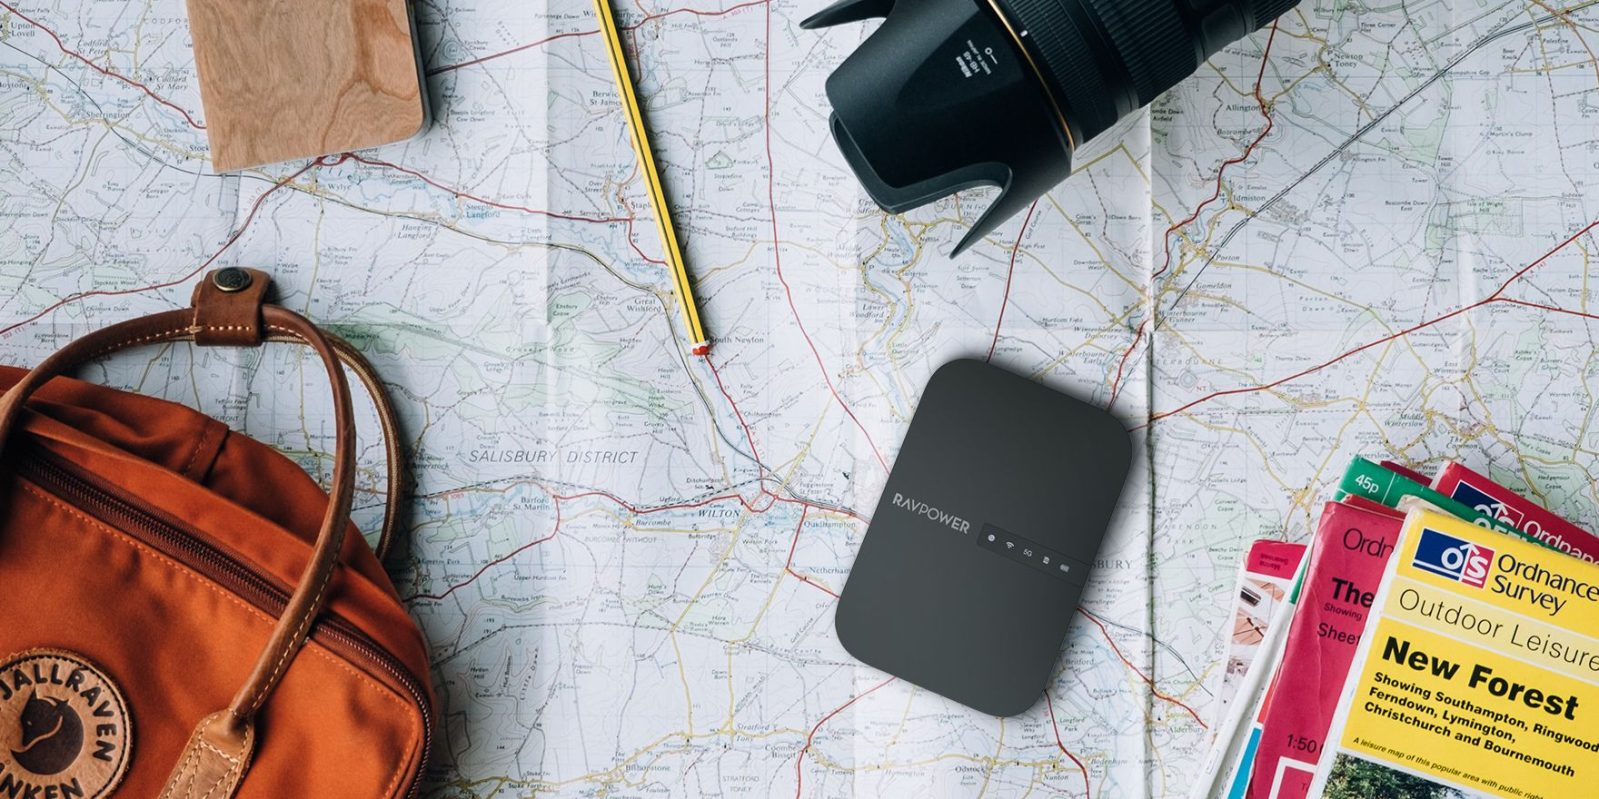 RAVPower FileHub is the best wireless SD card reader and portable router for $40